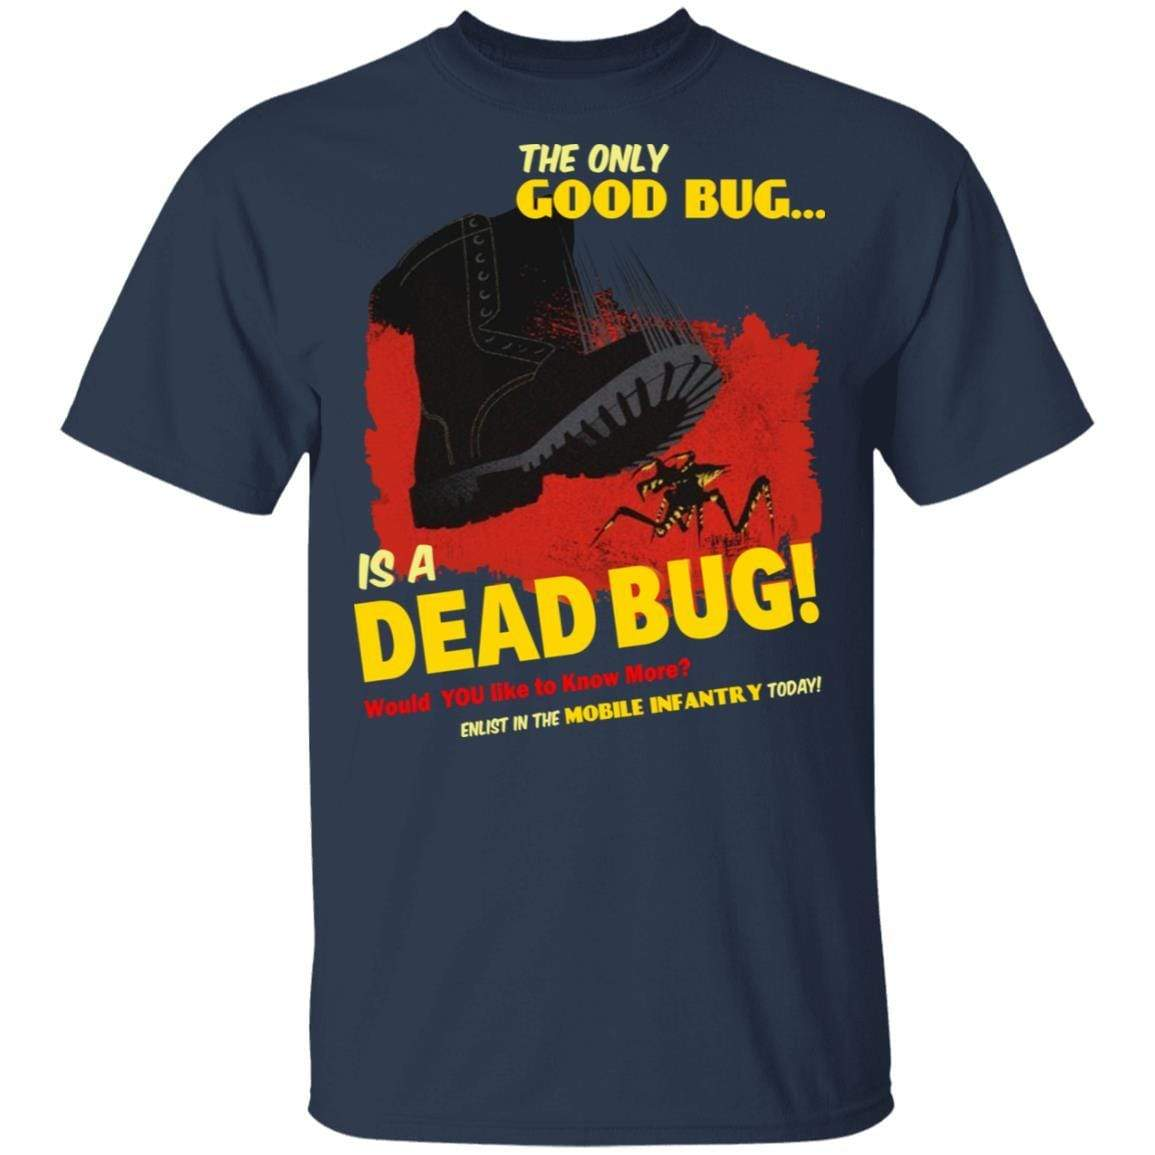 The Only Good Bug Is A Dead Bug Would You Like To Know More Enlist In The Mobile Infantry Today T-Shirts, Hoodies 1049-9966-91821633-48248 - Tee Ript